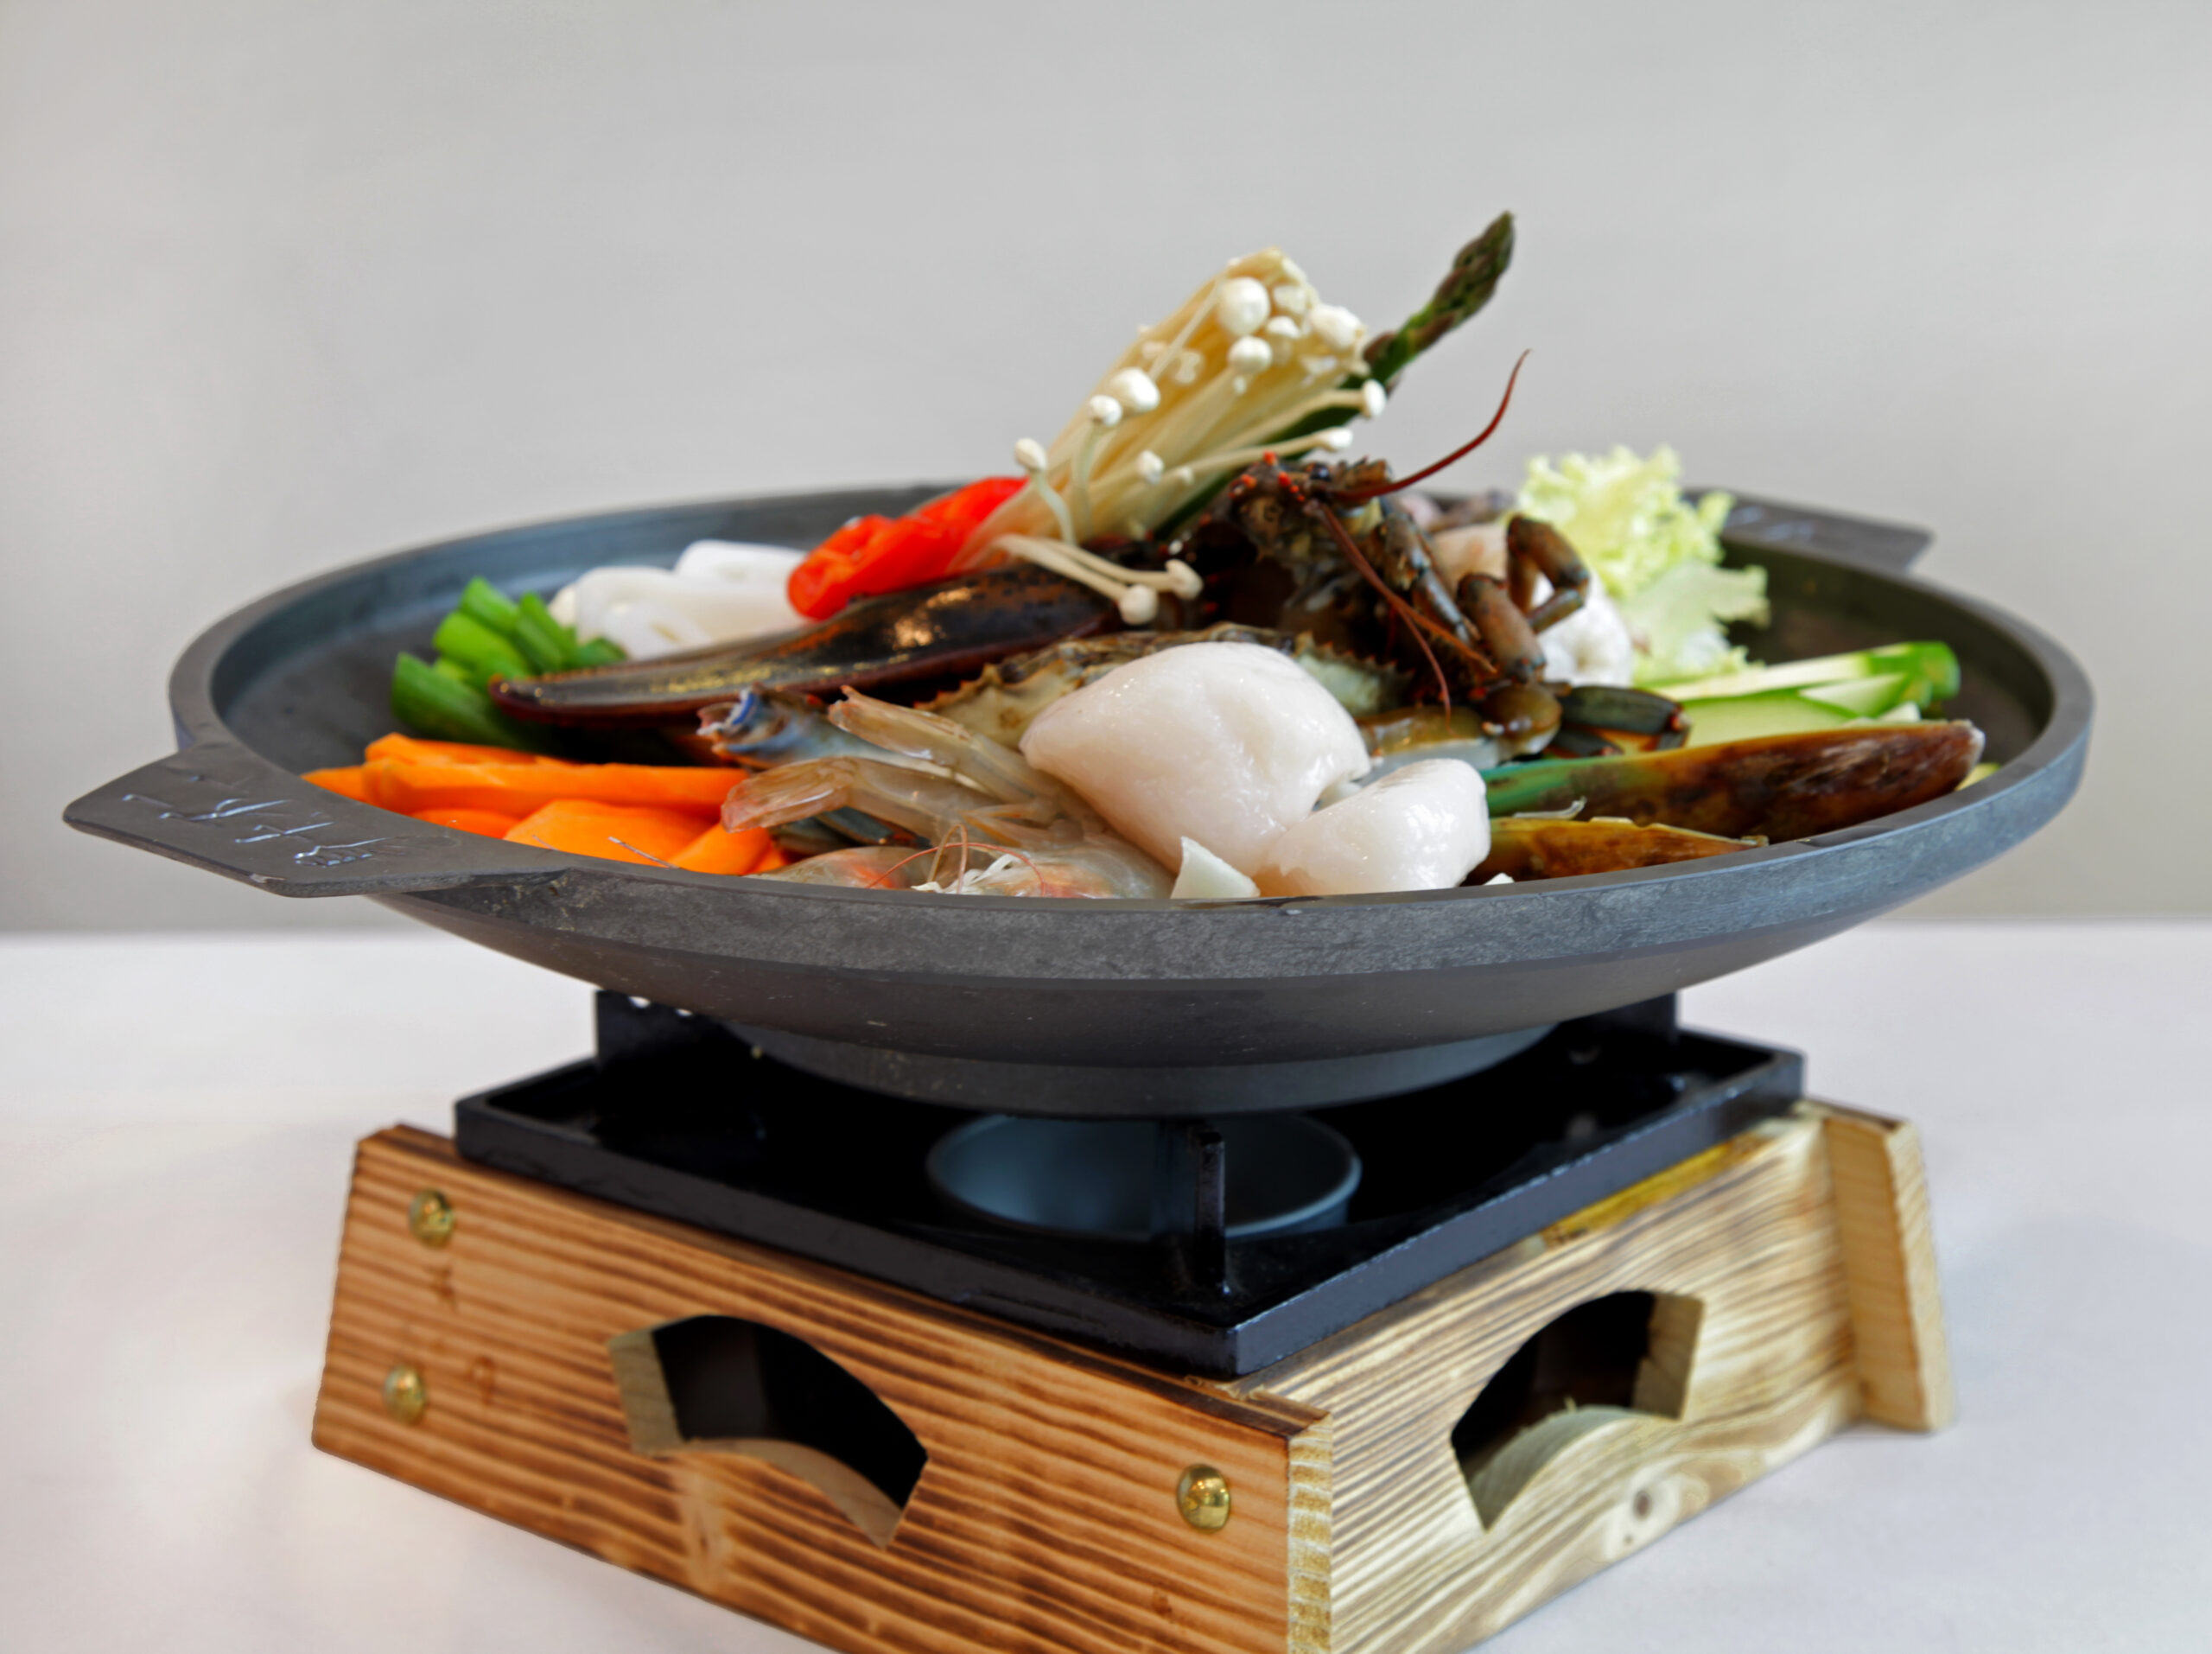 Seafood Gui <br> Marinated seafood grilled and servered on a hot sizzling pan